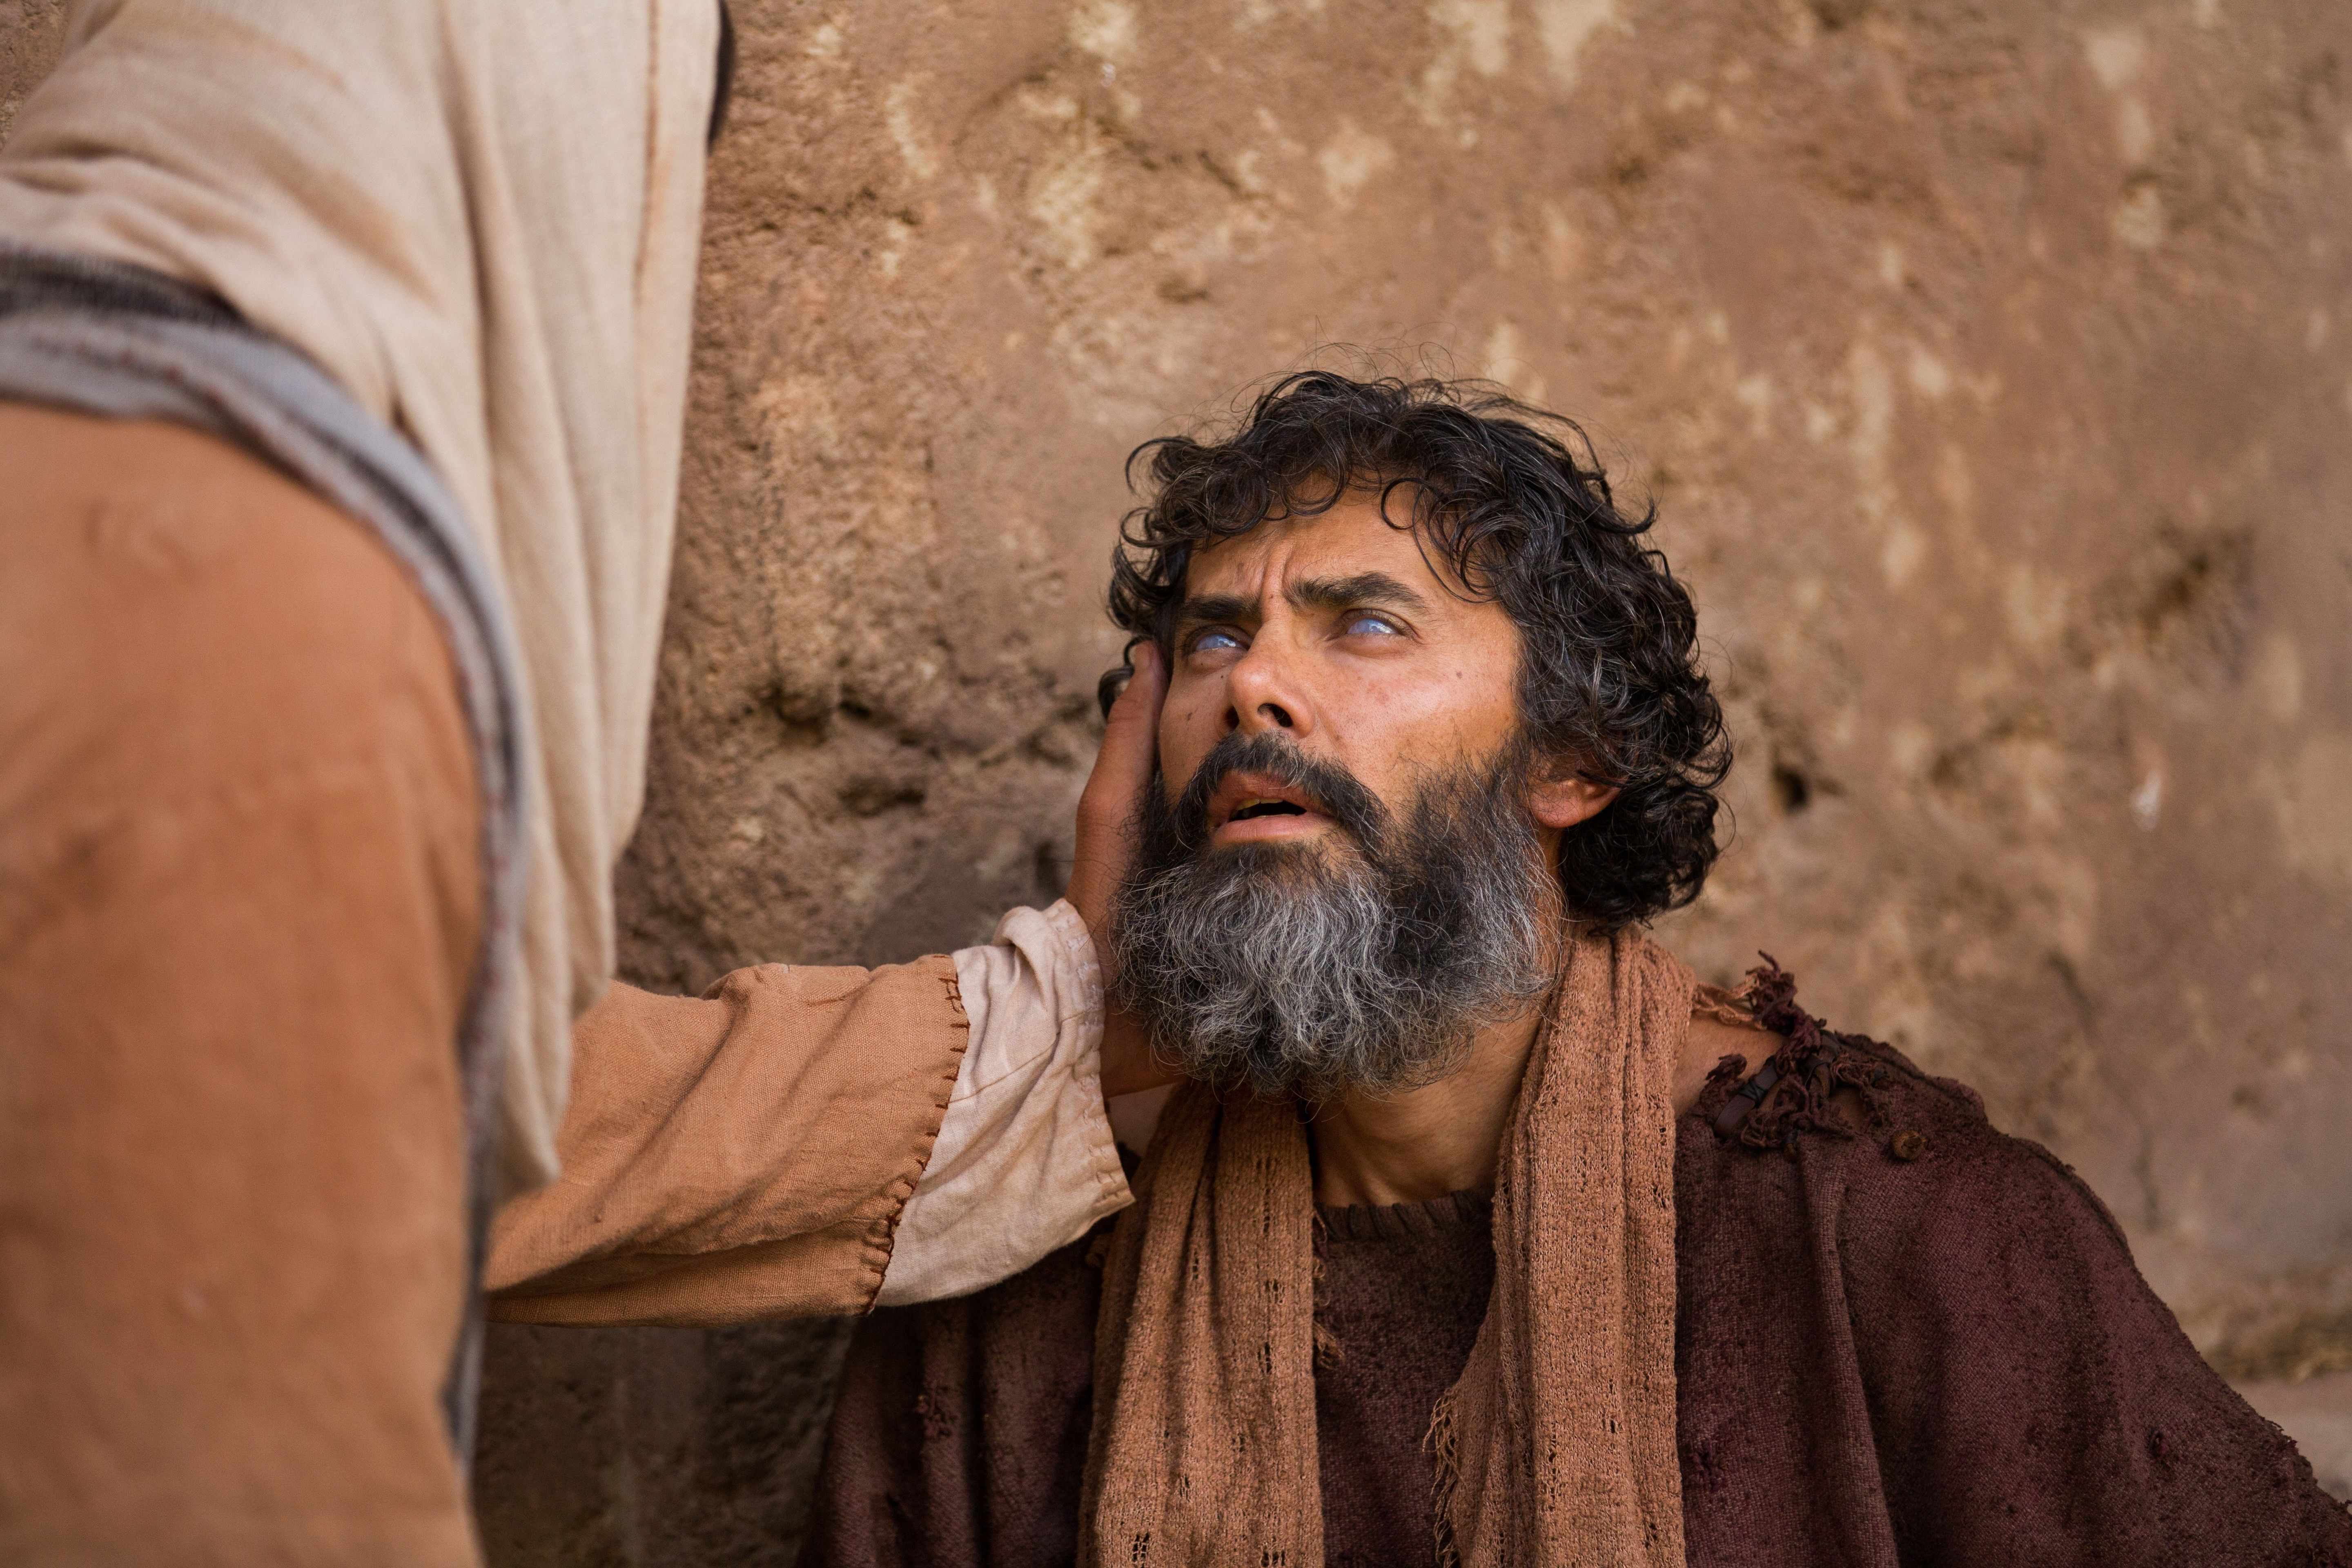 Christ talking with a blind man on the street.